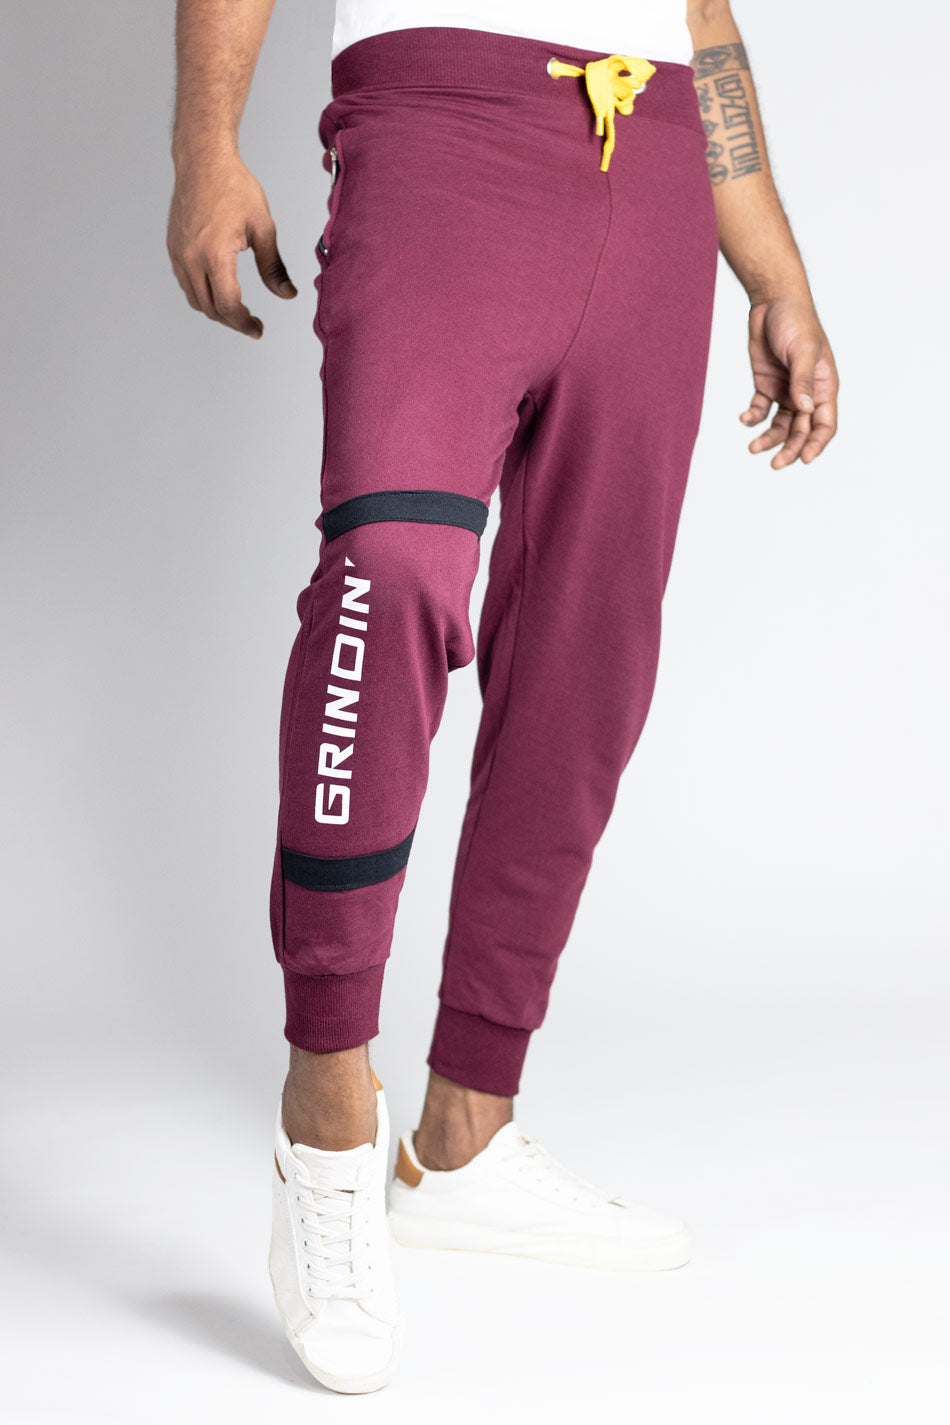 Grindin' jogger Burgundy for men